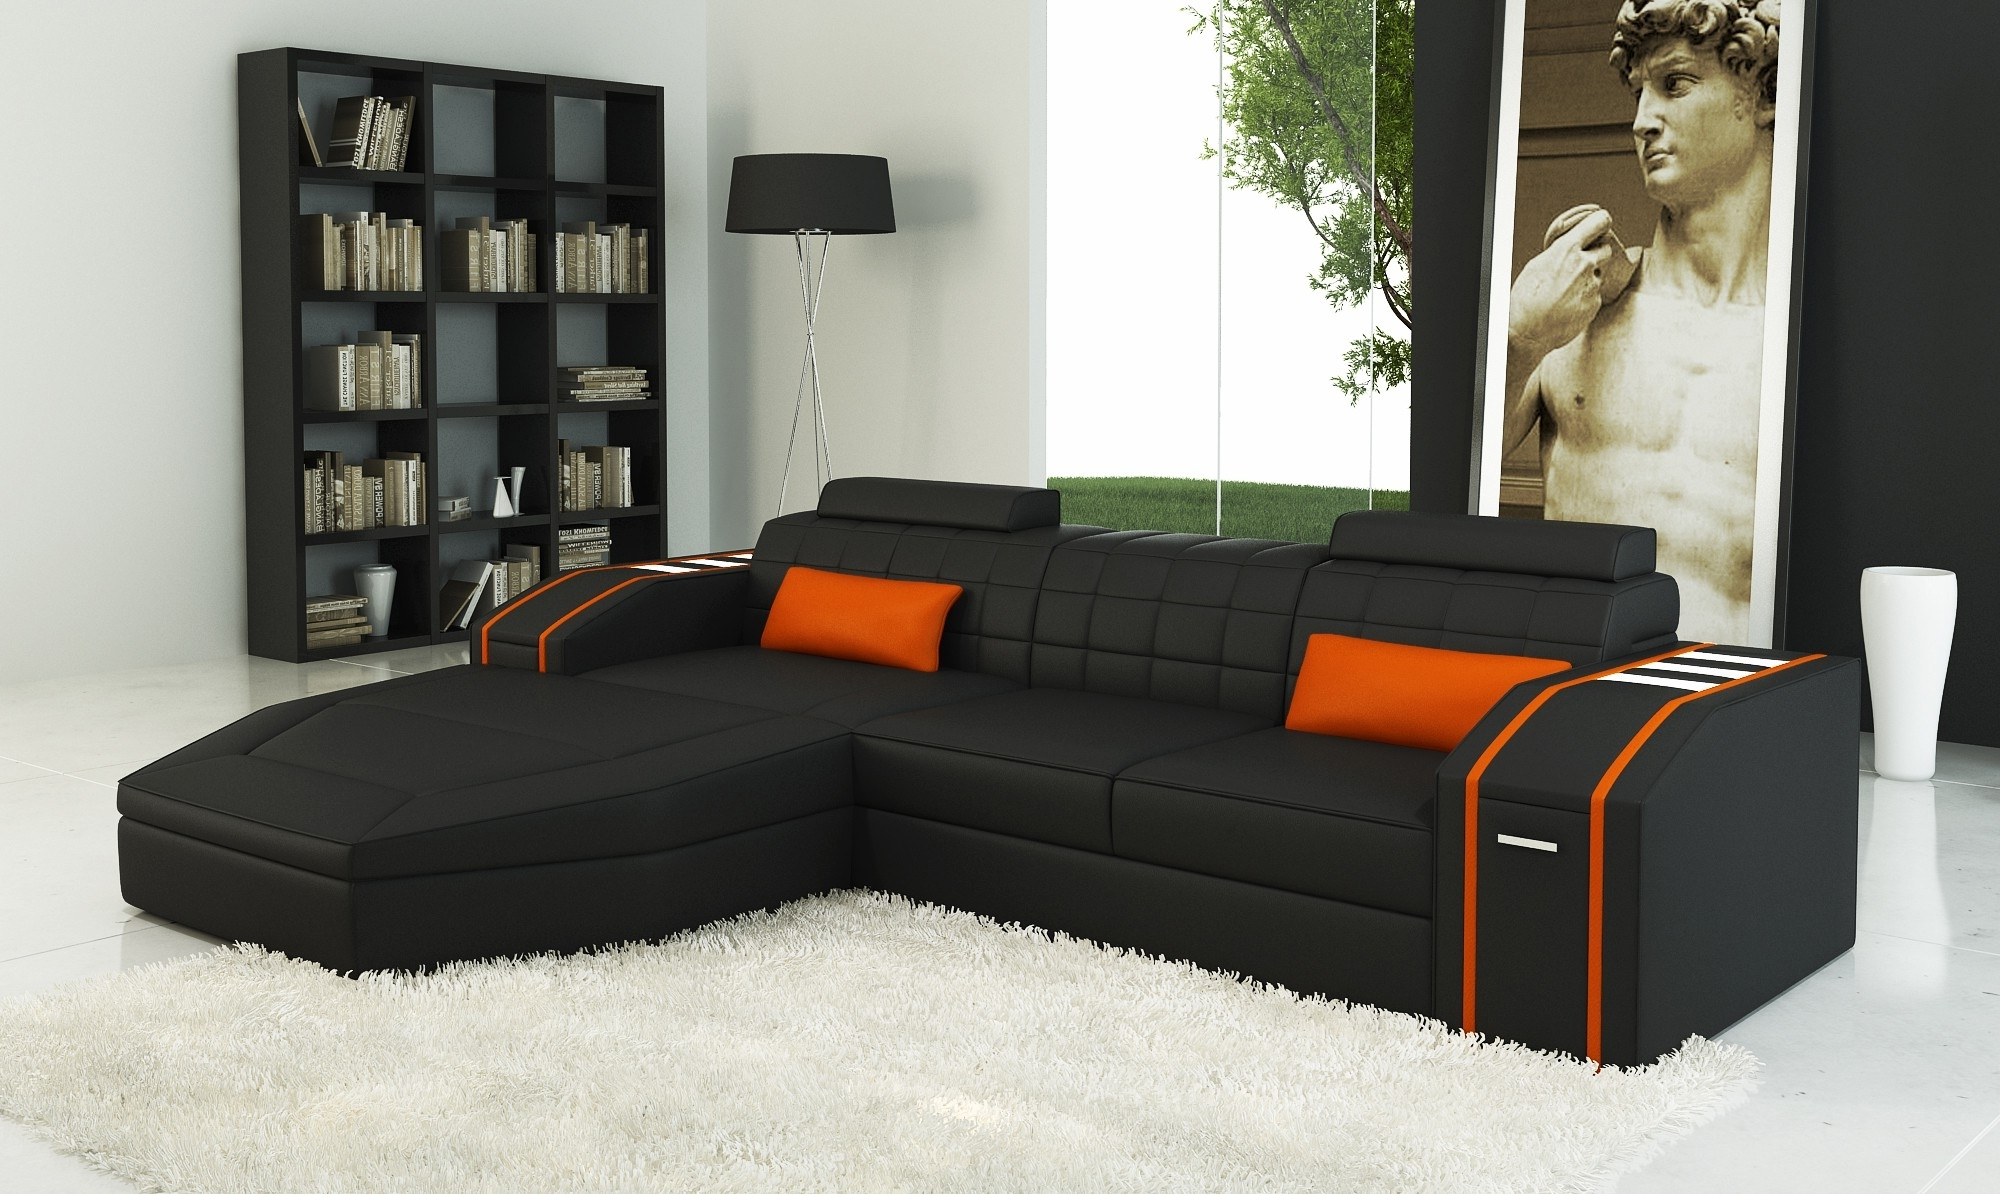 Recent Cheap Black Sofas Intended For Sofa: Extraordinary Cheap Black Sofa Black Furniture Bedroom (View 12 of 15)